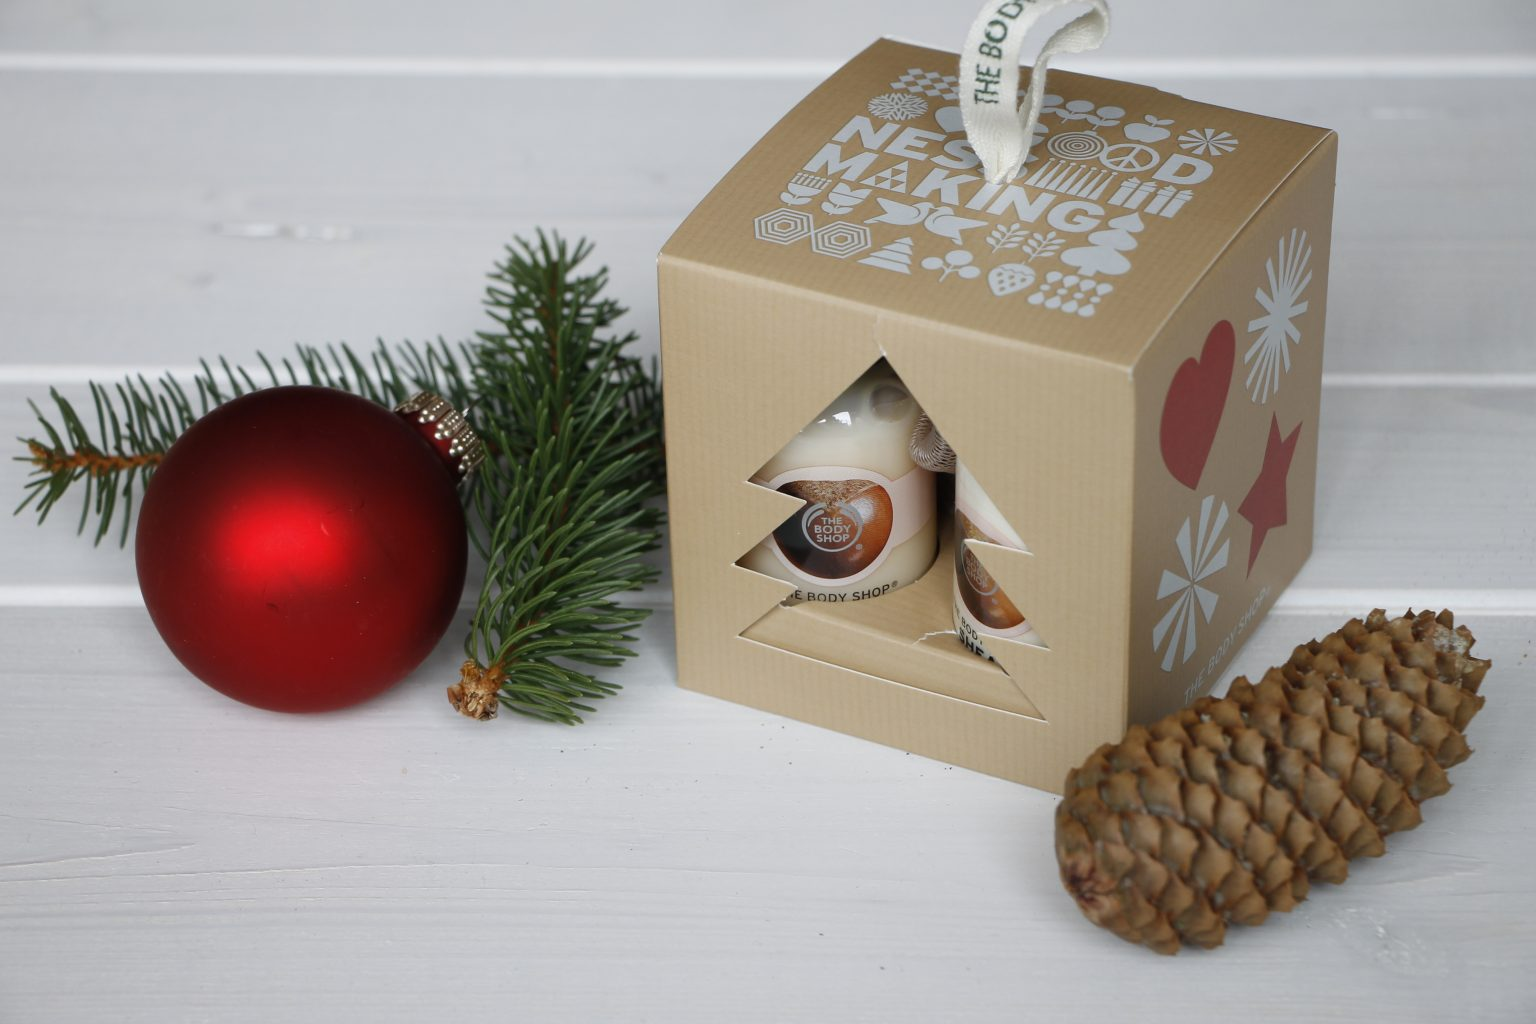 The Body Shop Geschenkbox